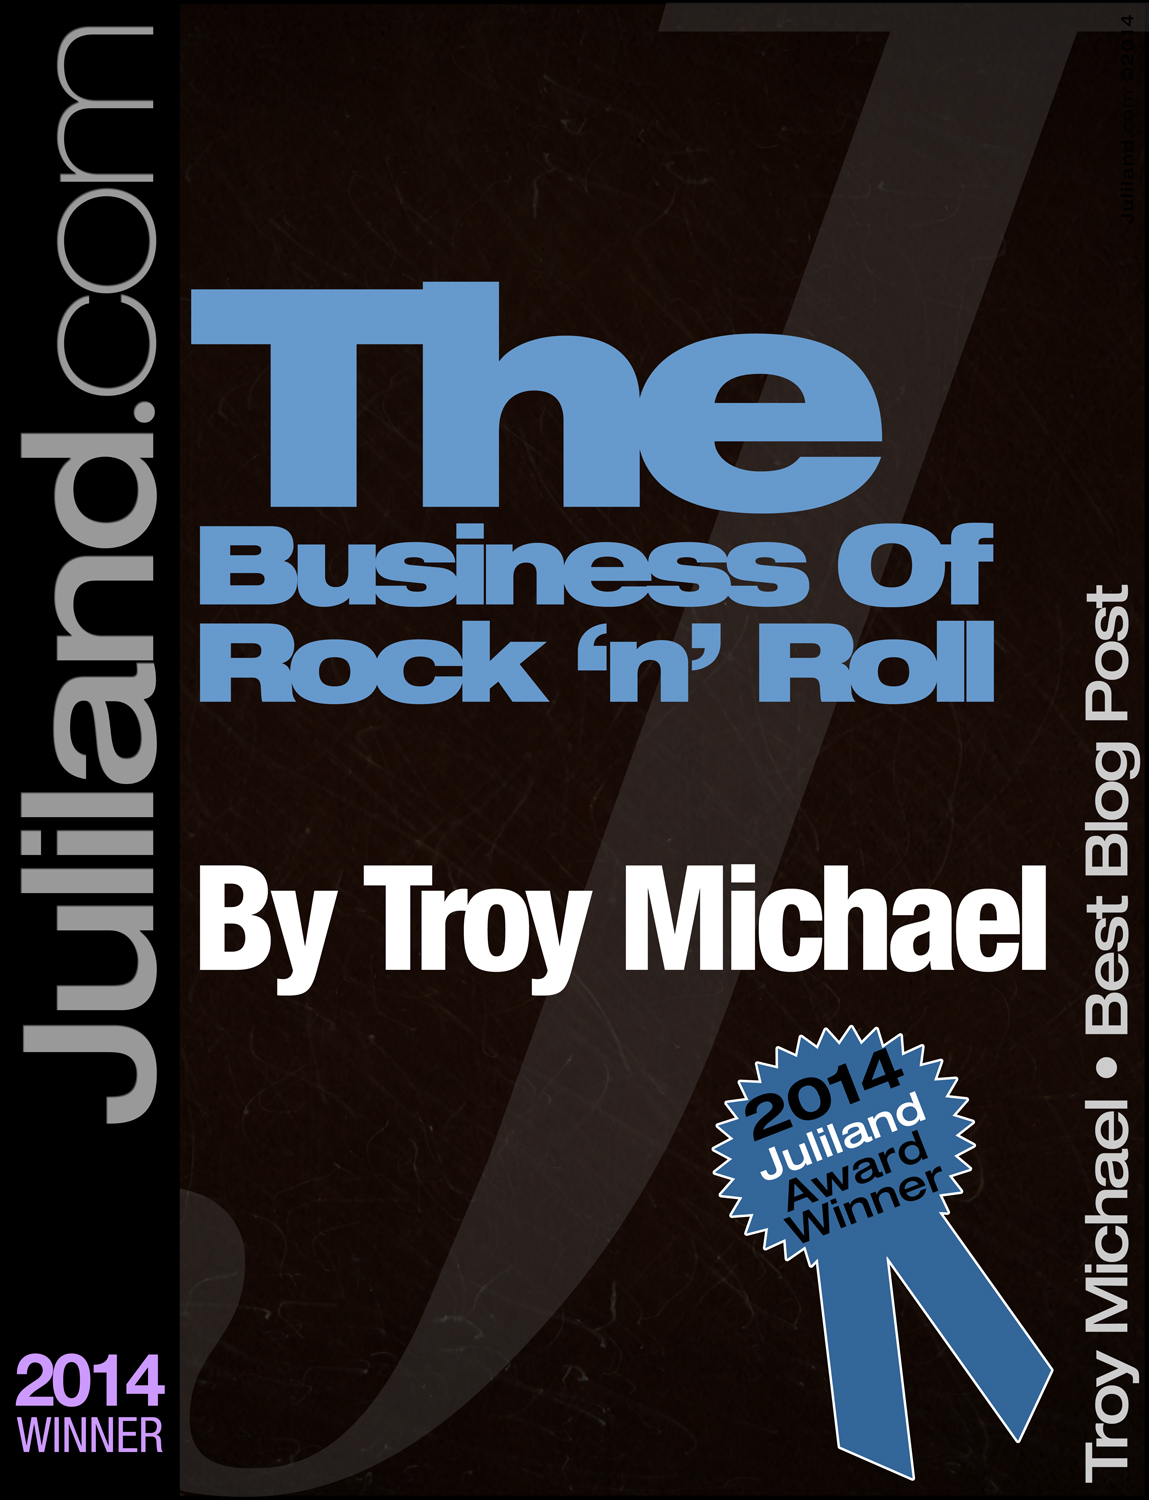 2014 Best Blog Post – Troy Michael/The Business of Rock 'n' Roll